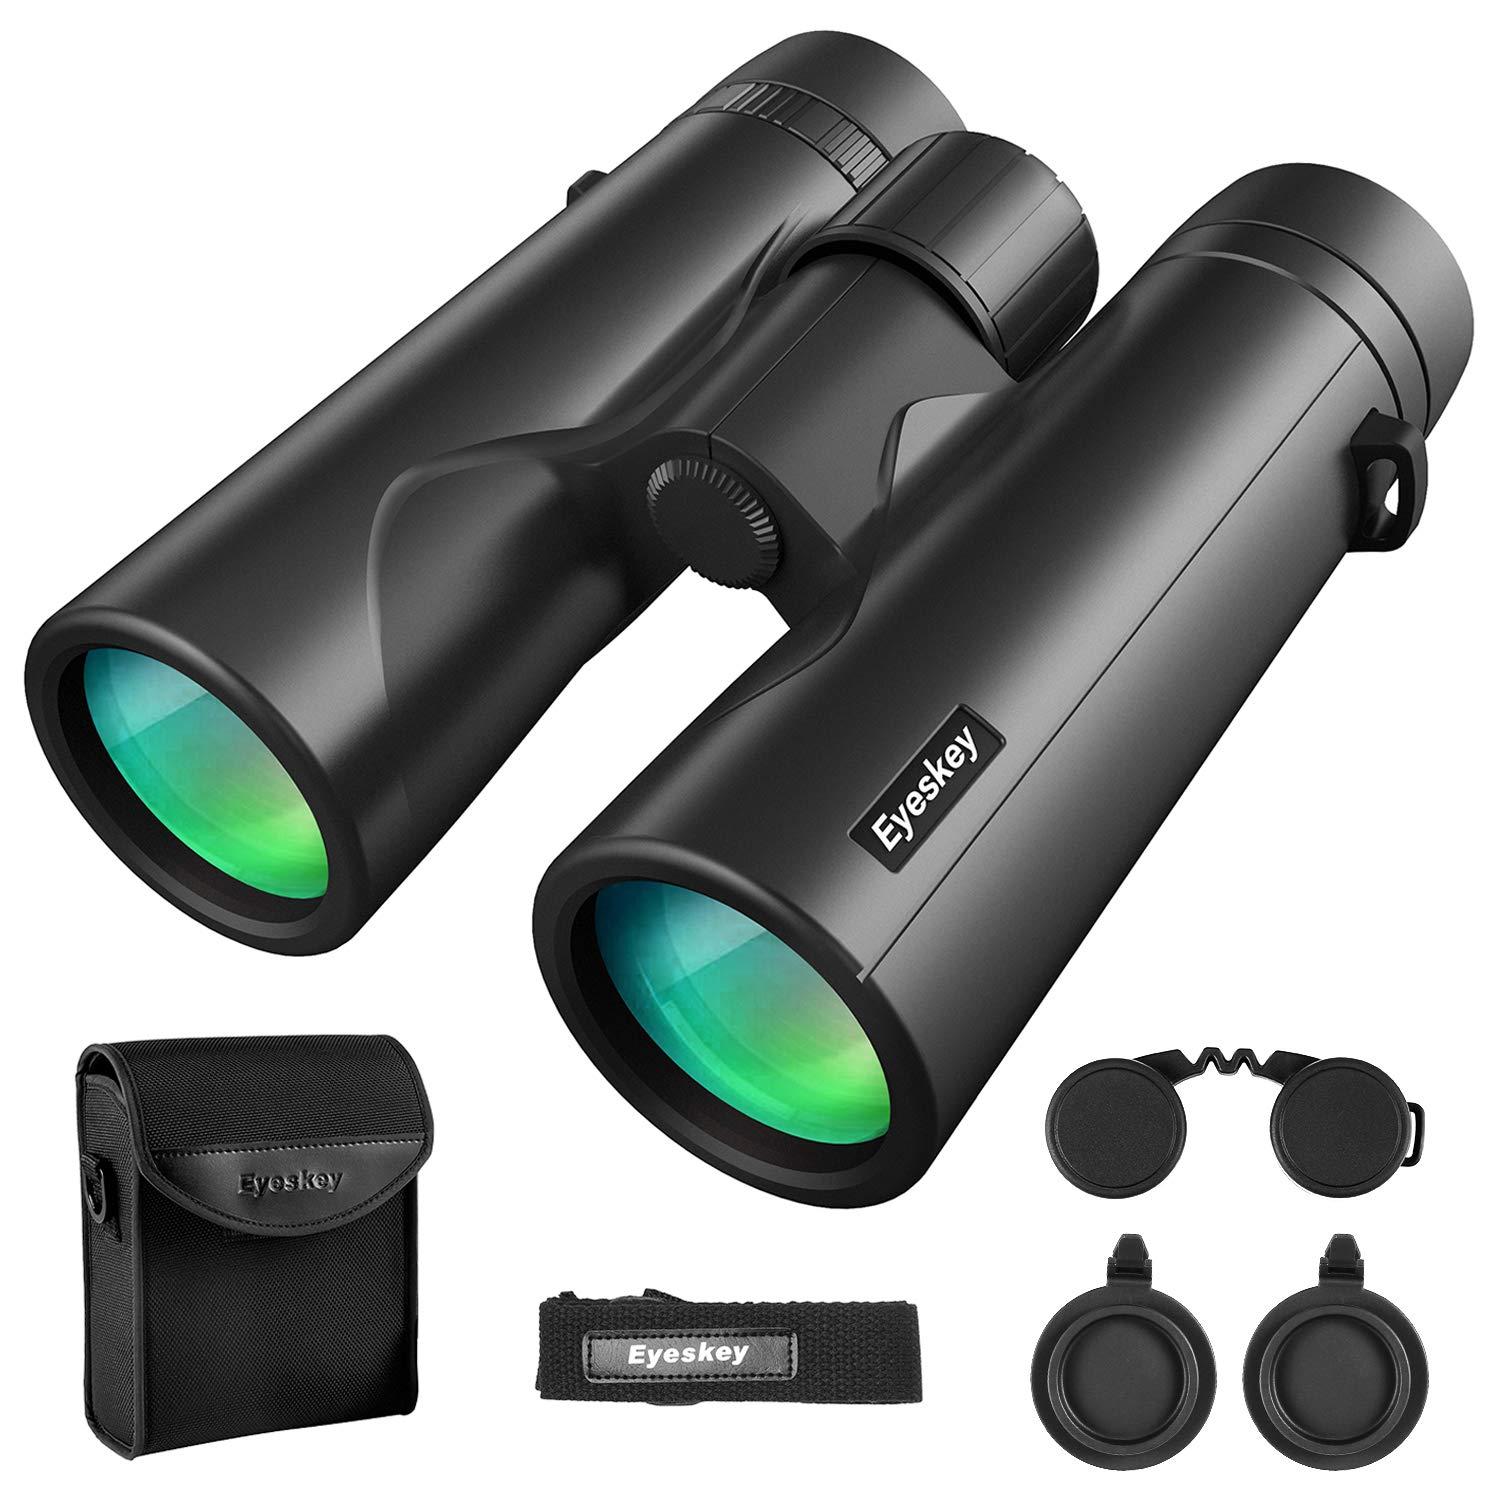 Eyeskey 8X42 Binoculars for Adults Compact Lightweight Fully Waterproof Fog-Proof Wild Field of View Low-Light Vision HD Binocular for Wildlife Watching Hunting